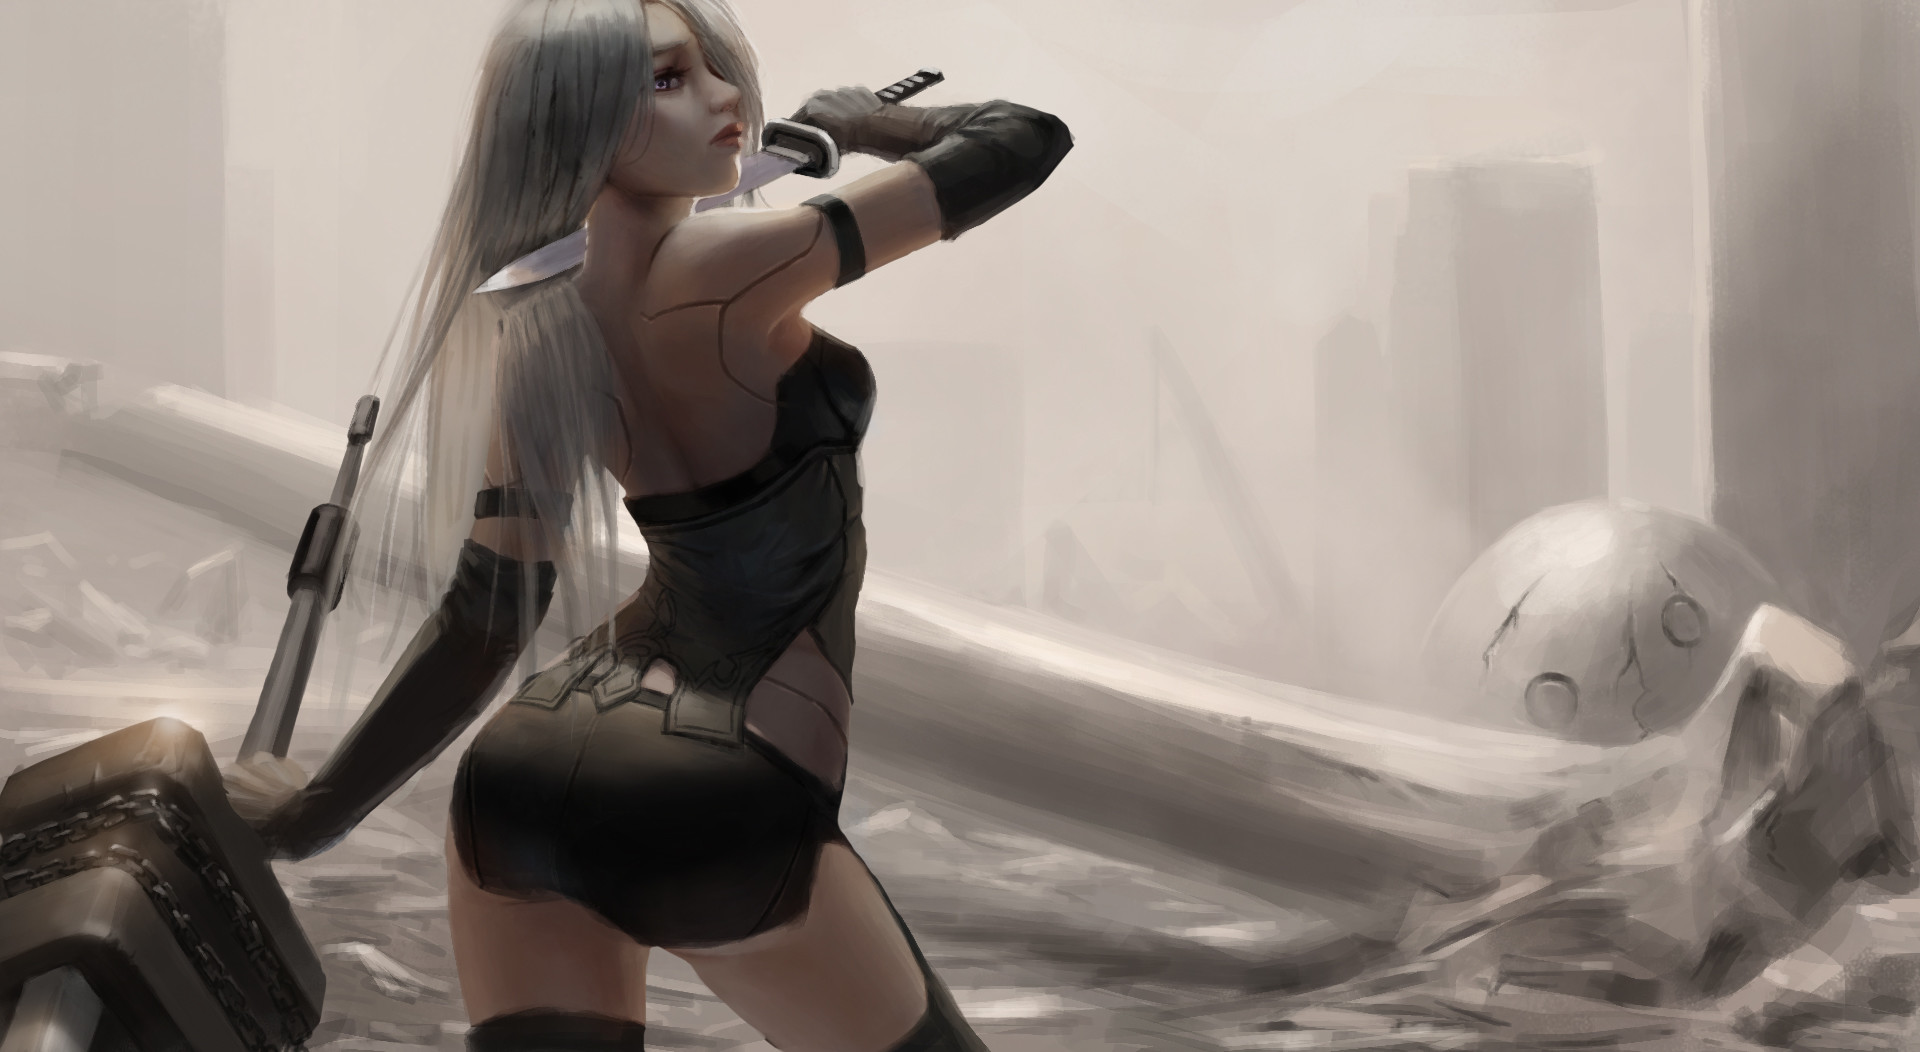 Nier Automata Cute Wallpaper Android Nier Automata Fan Art Hd Games 4k Wallpapers Images